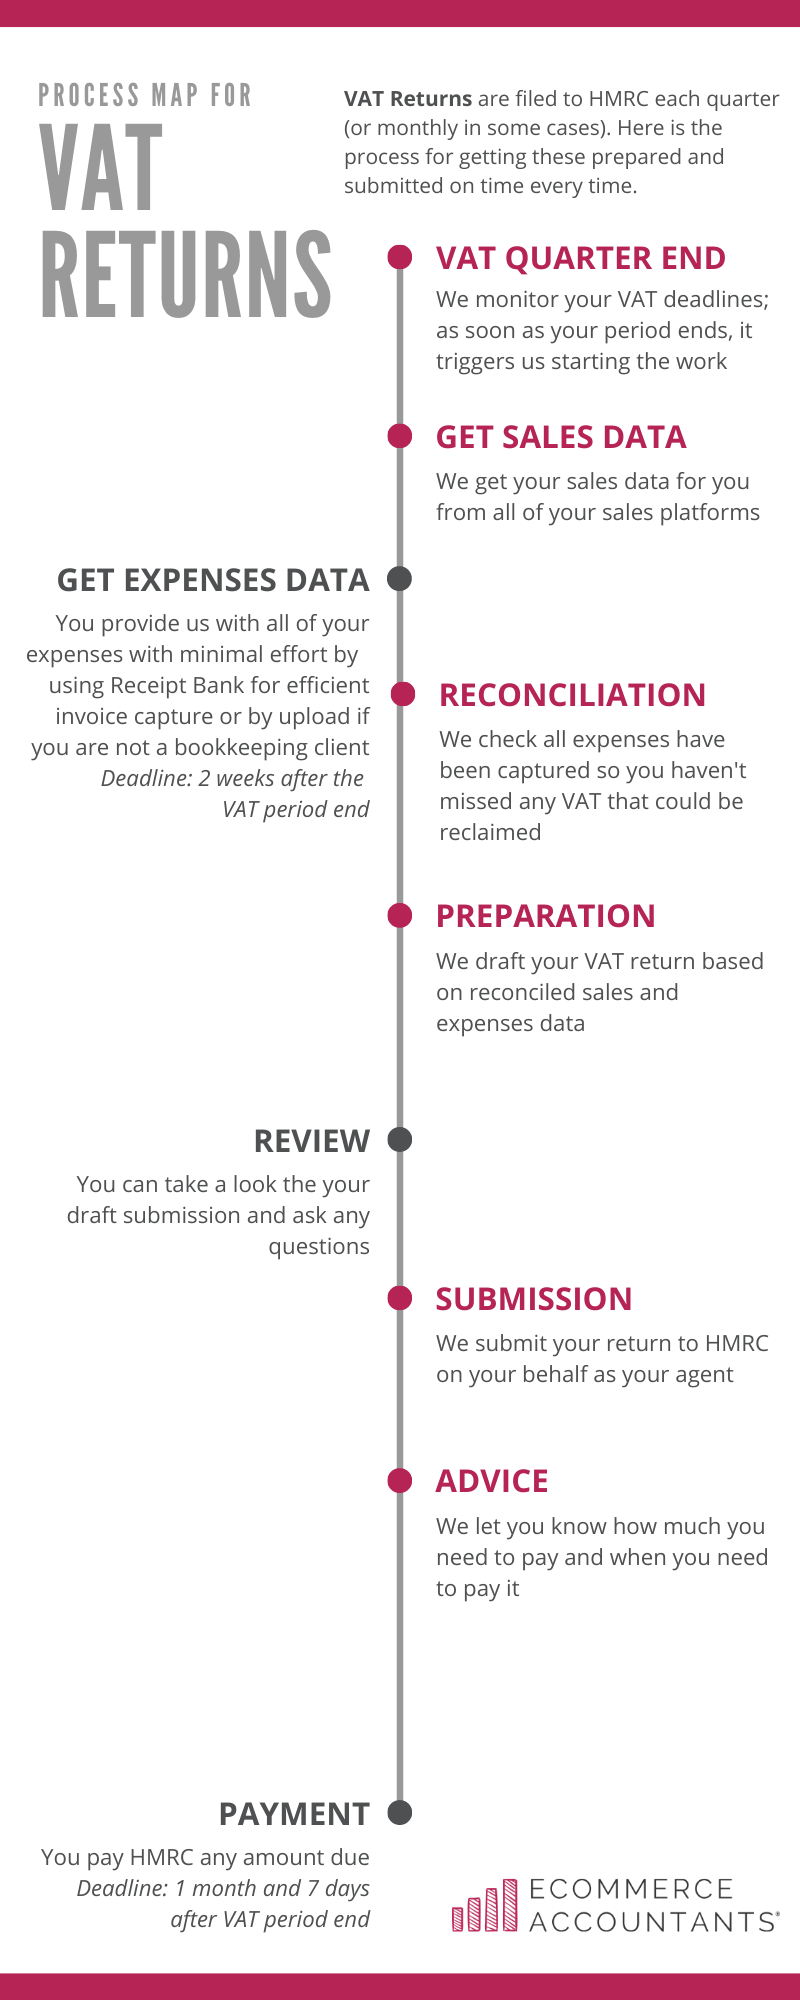 The VAT returns process by Ecommerce Accountants